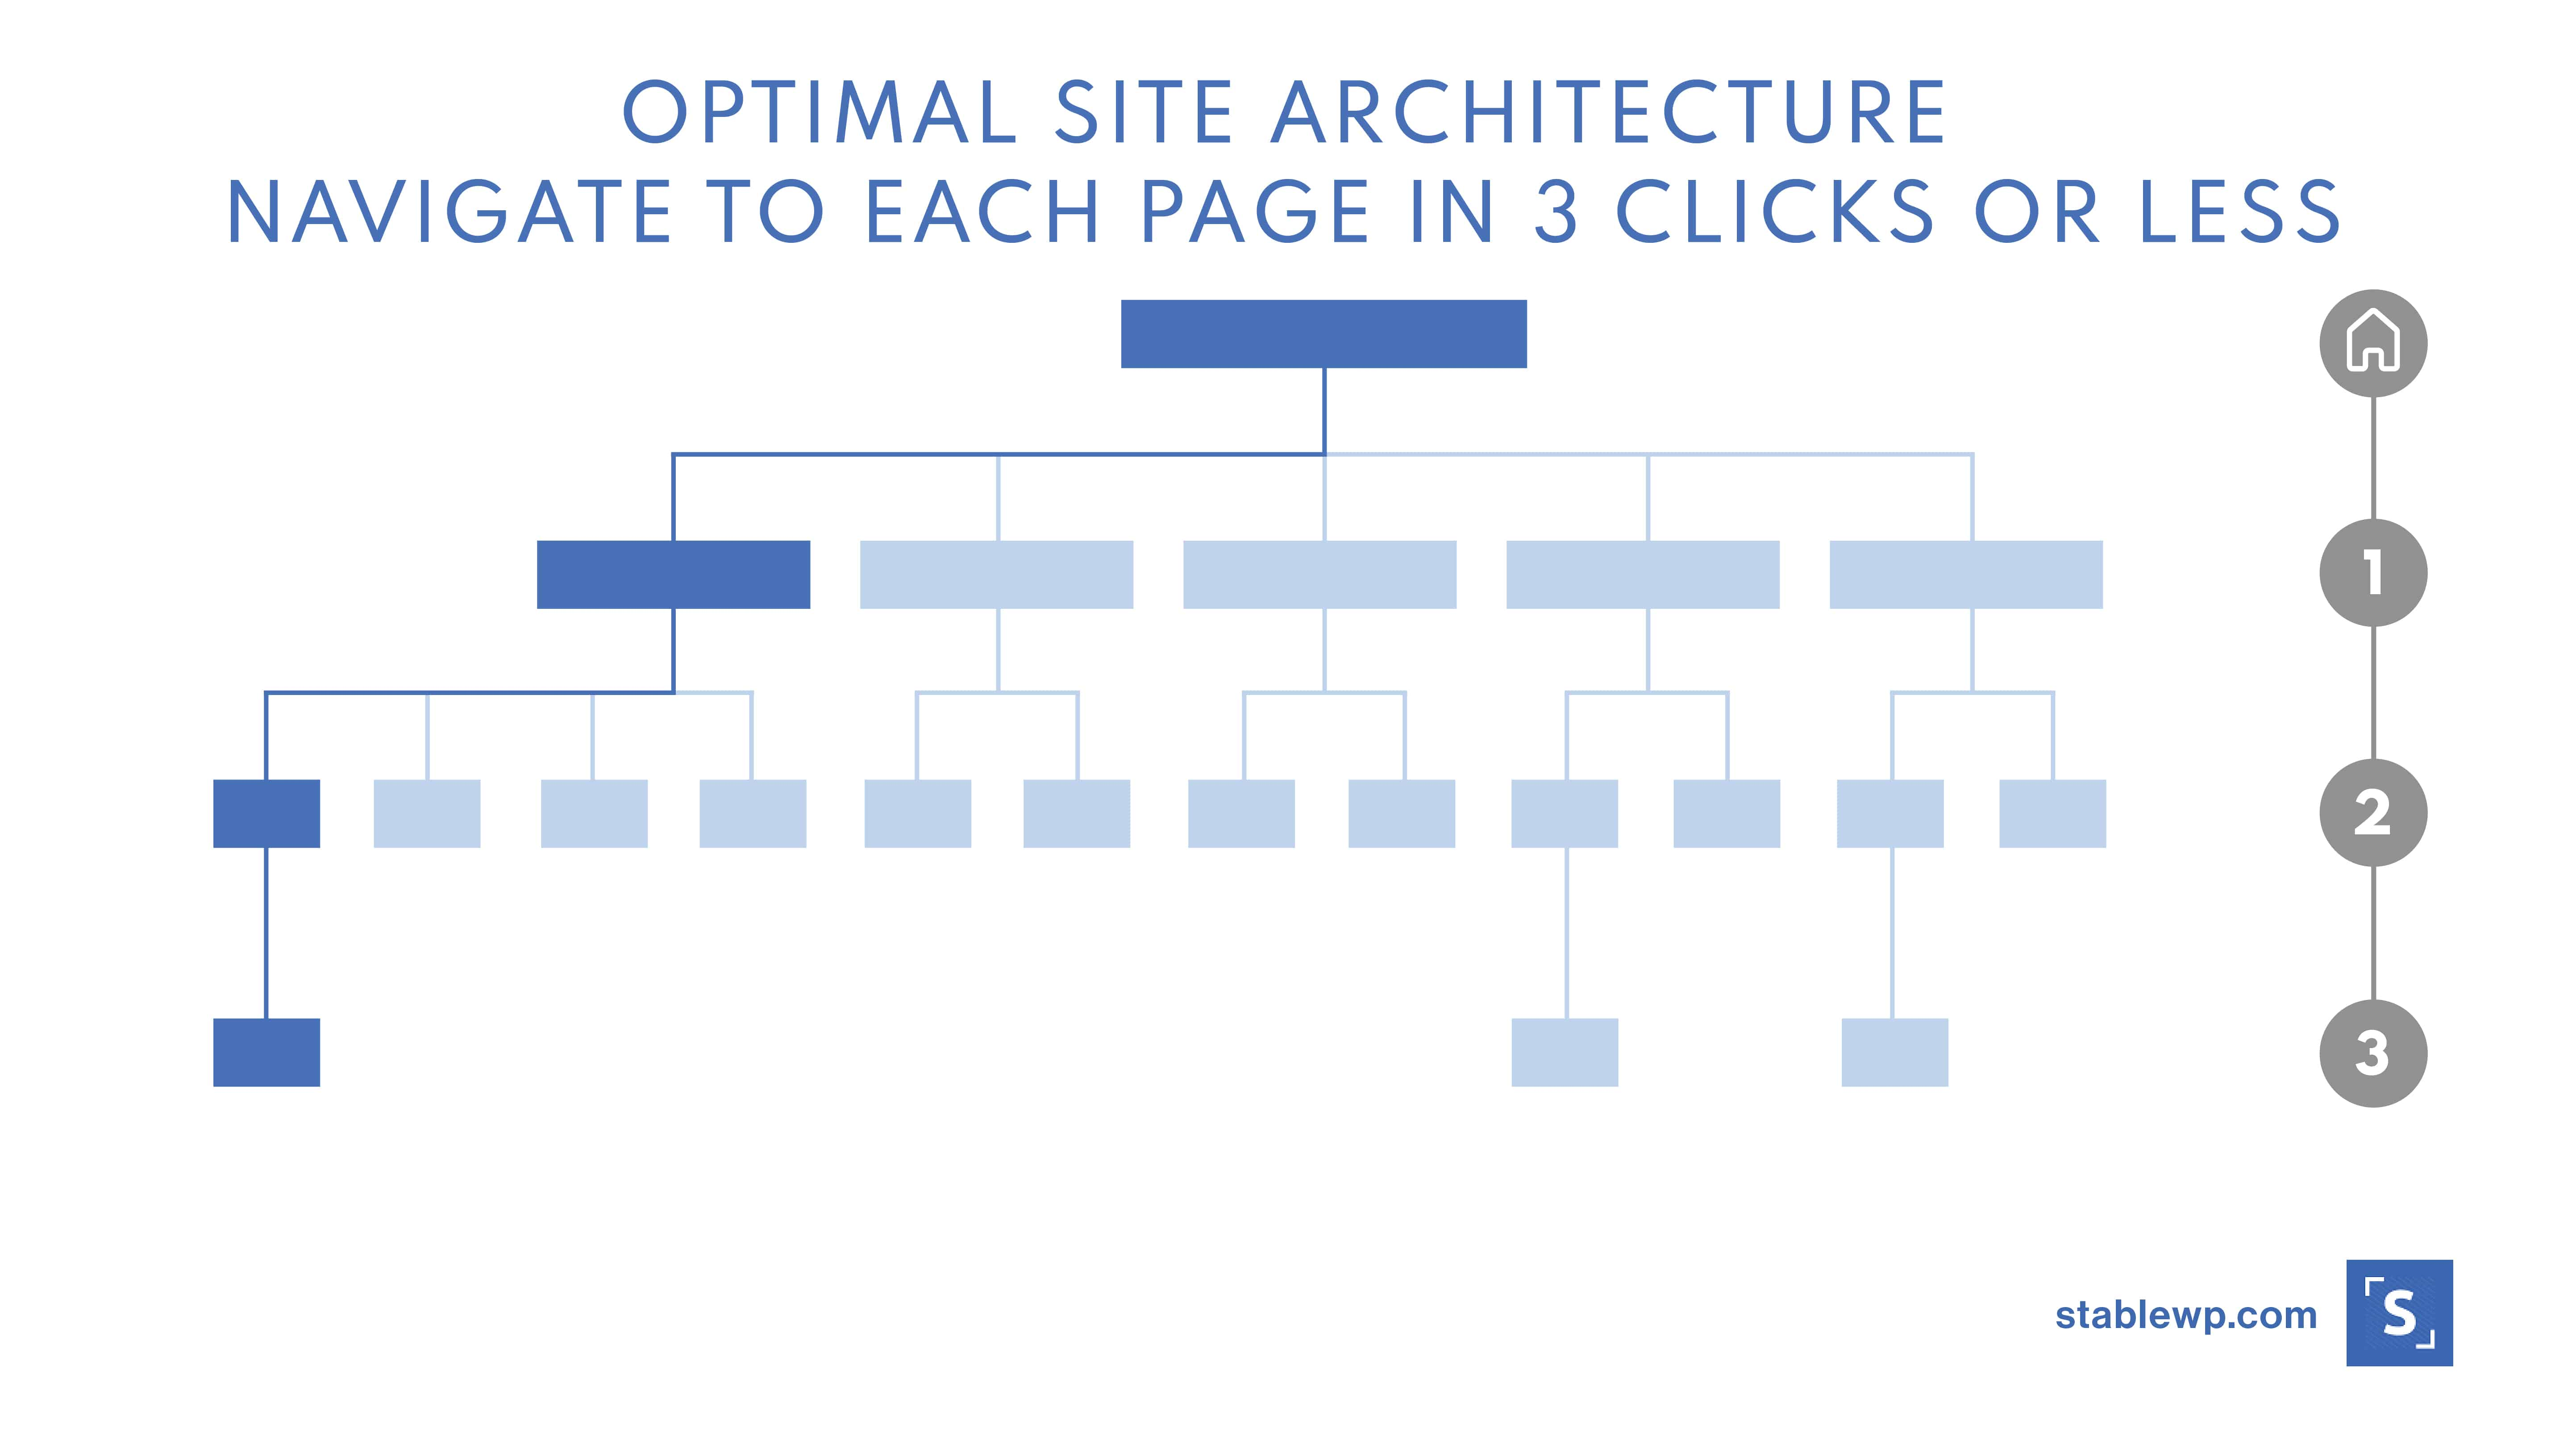 optimal site architecture - 3 clicks from home page